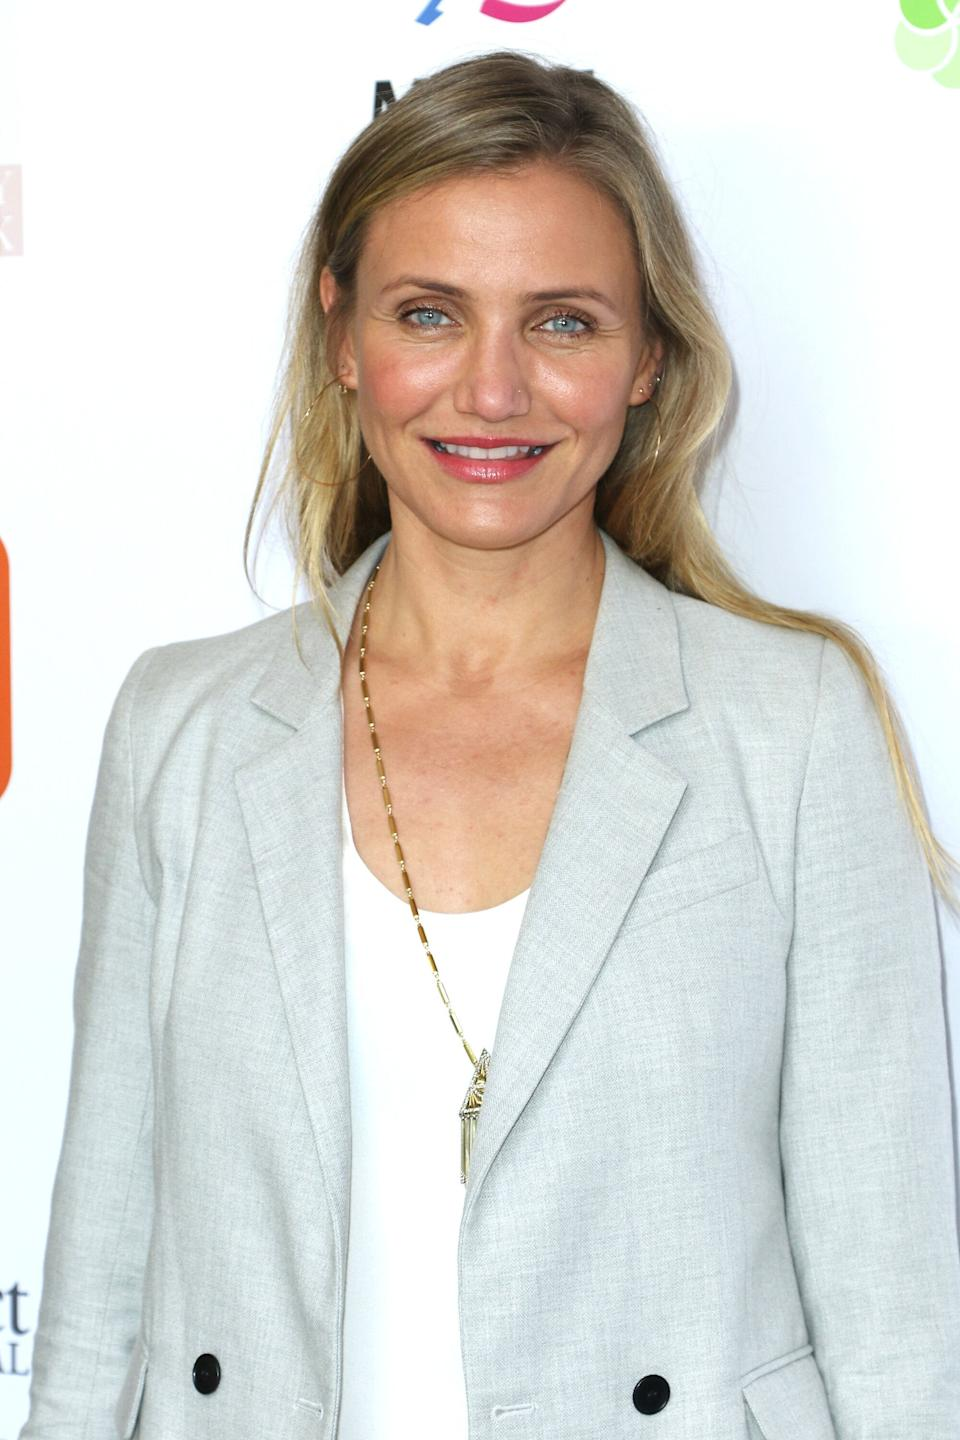 Cameron Diaz (Photo: SIPA USA/PA Images)